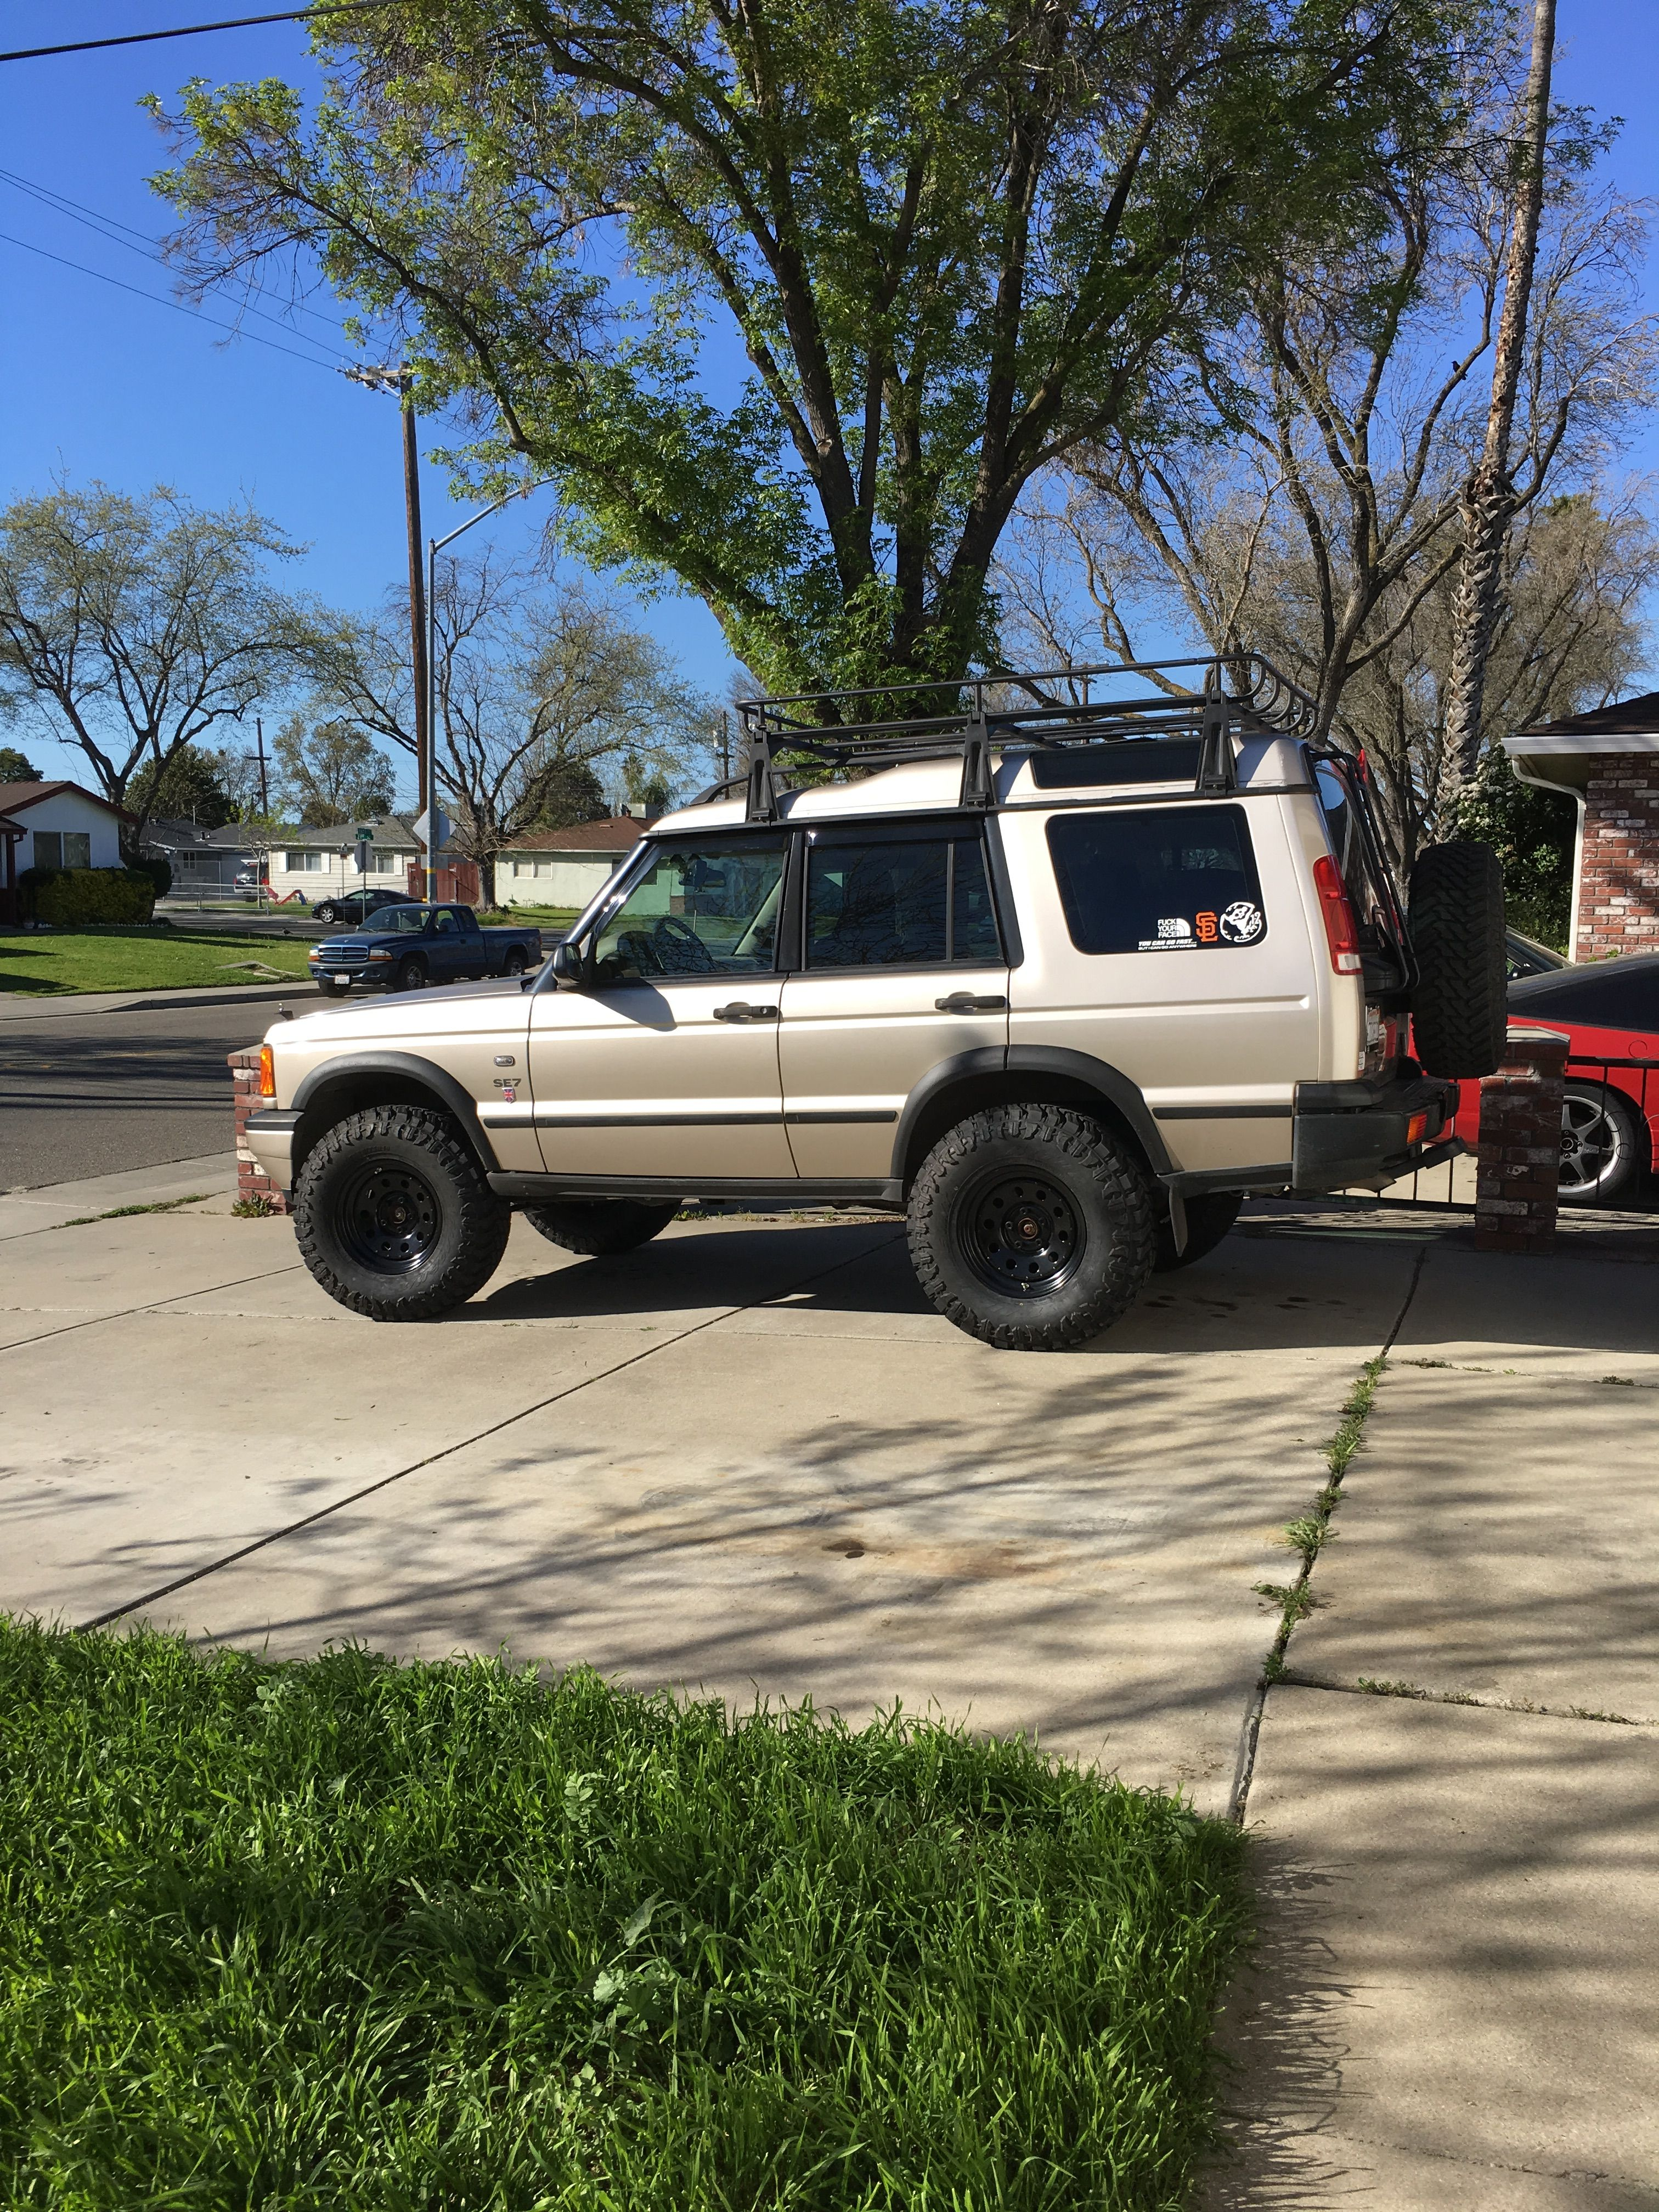 "2001 Land Rover Discovery 2 SE7 Terrafirma 3"" lift and Rims on 33"" Atturo  MT tires. All purchased from lucky 8 Off Road equipment good prices and  great ..."